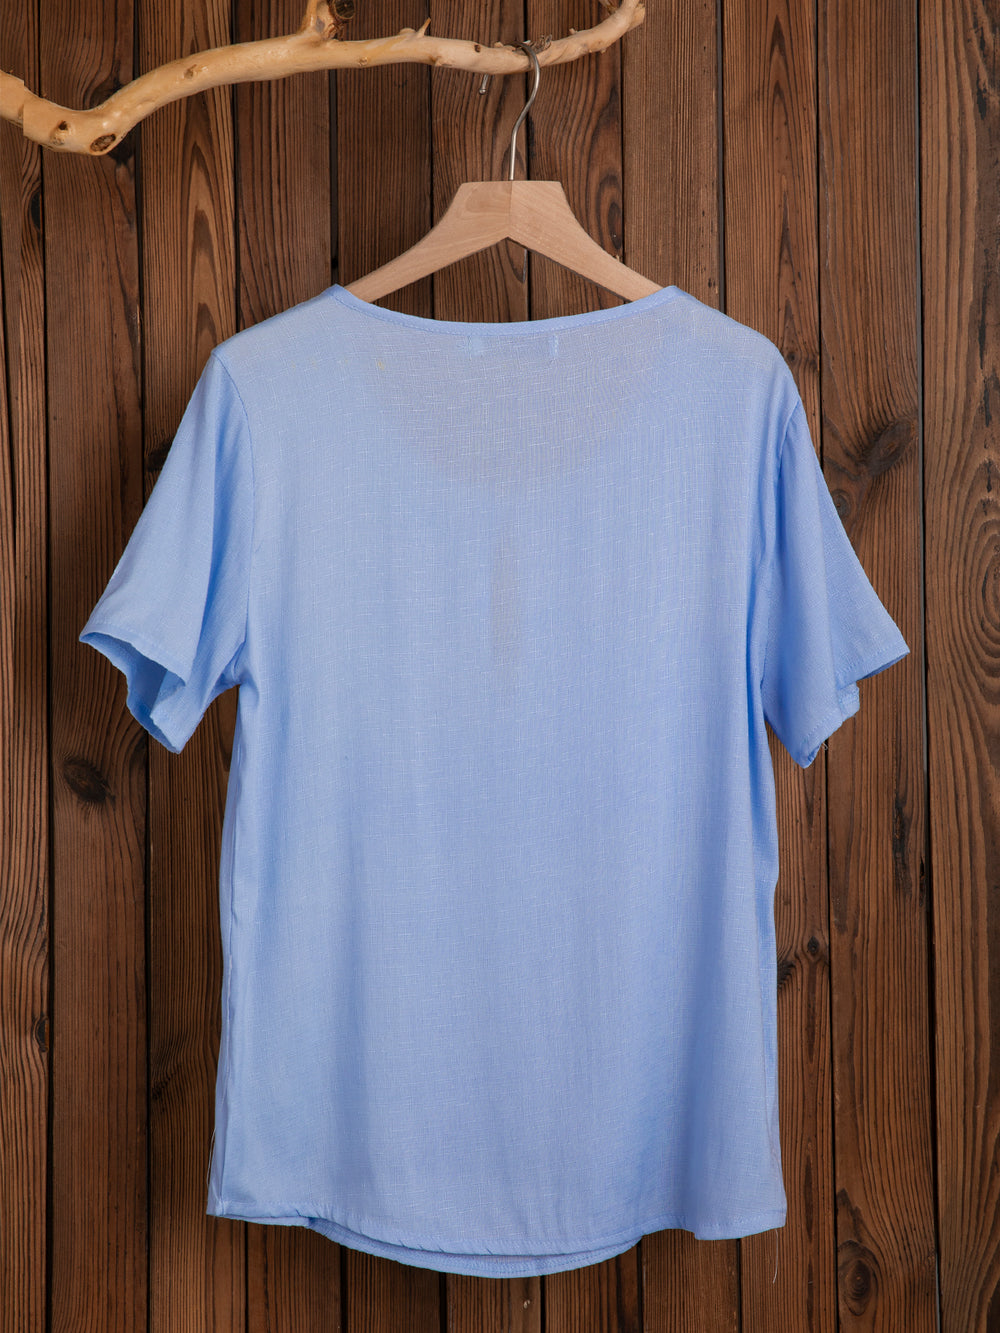 Cotton-Blend Short Sleeve Plain Shirts & Tops